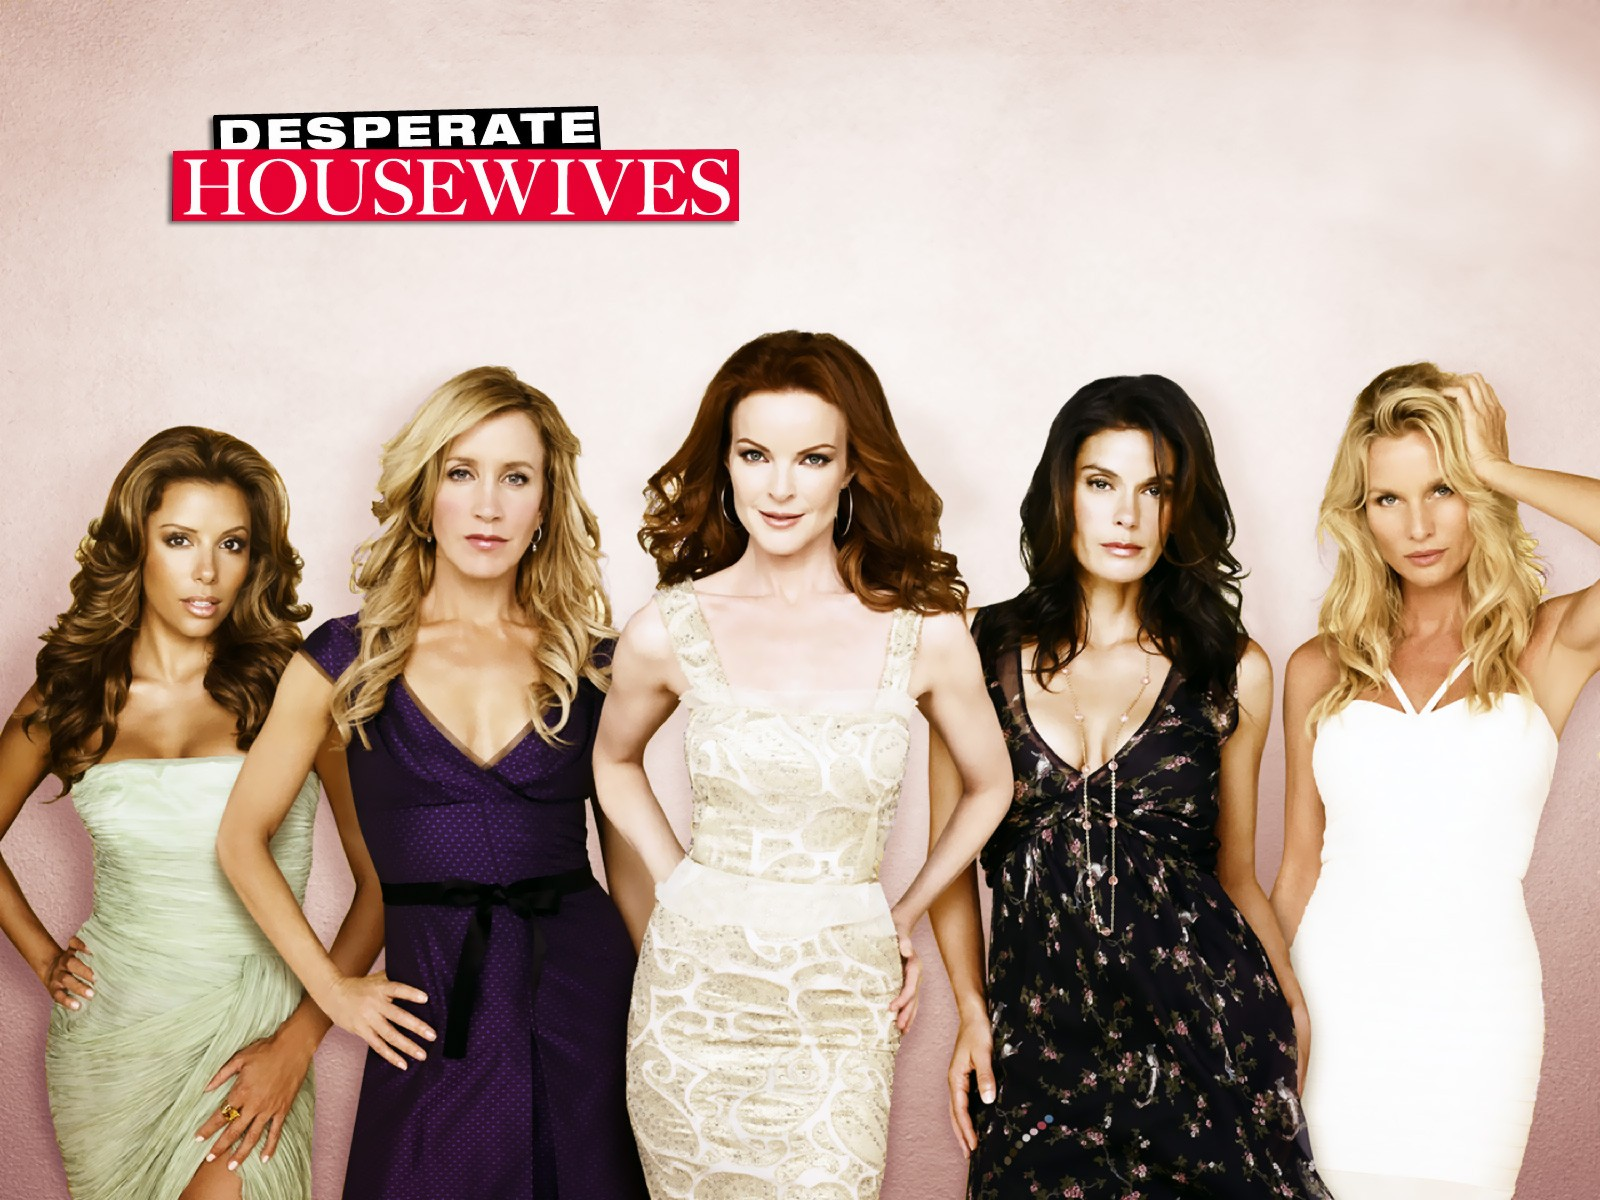 desperate_housewives_tv_series-1600x1200